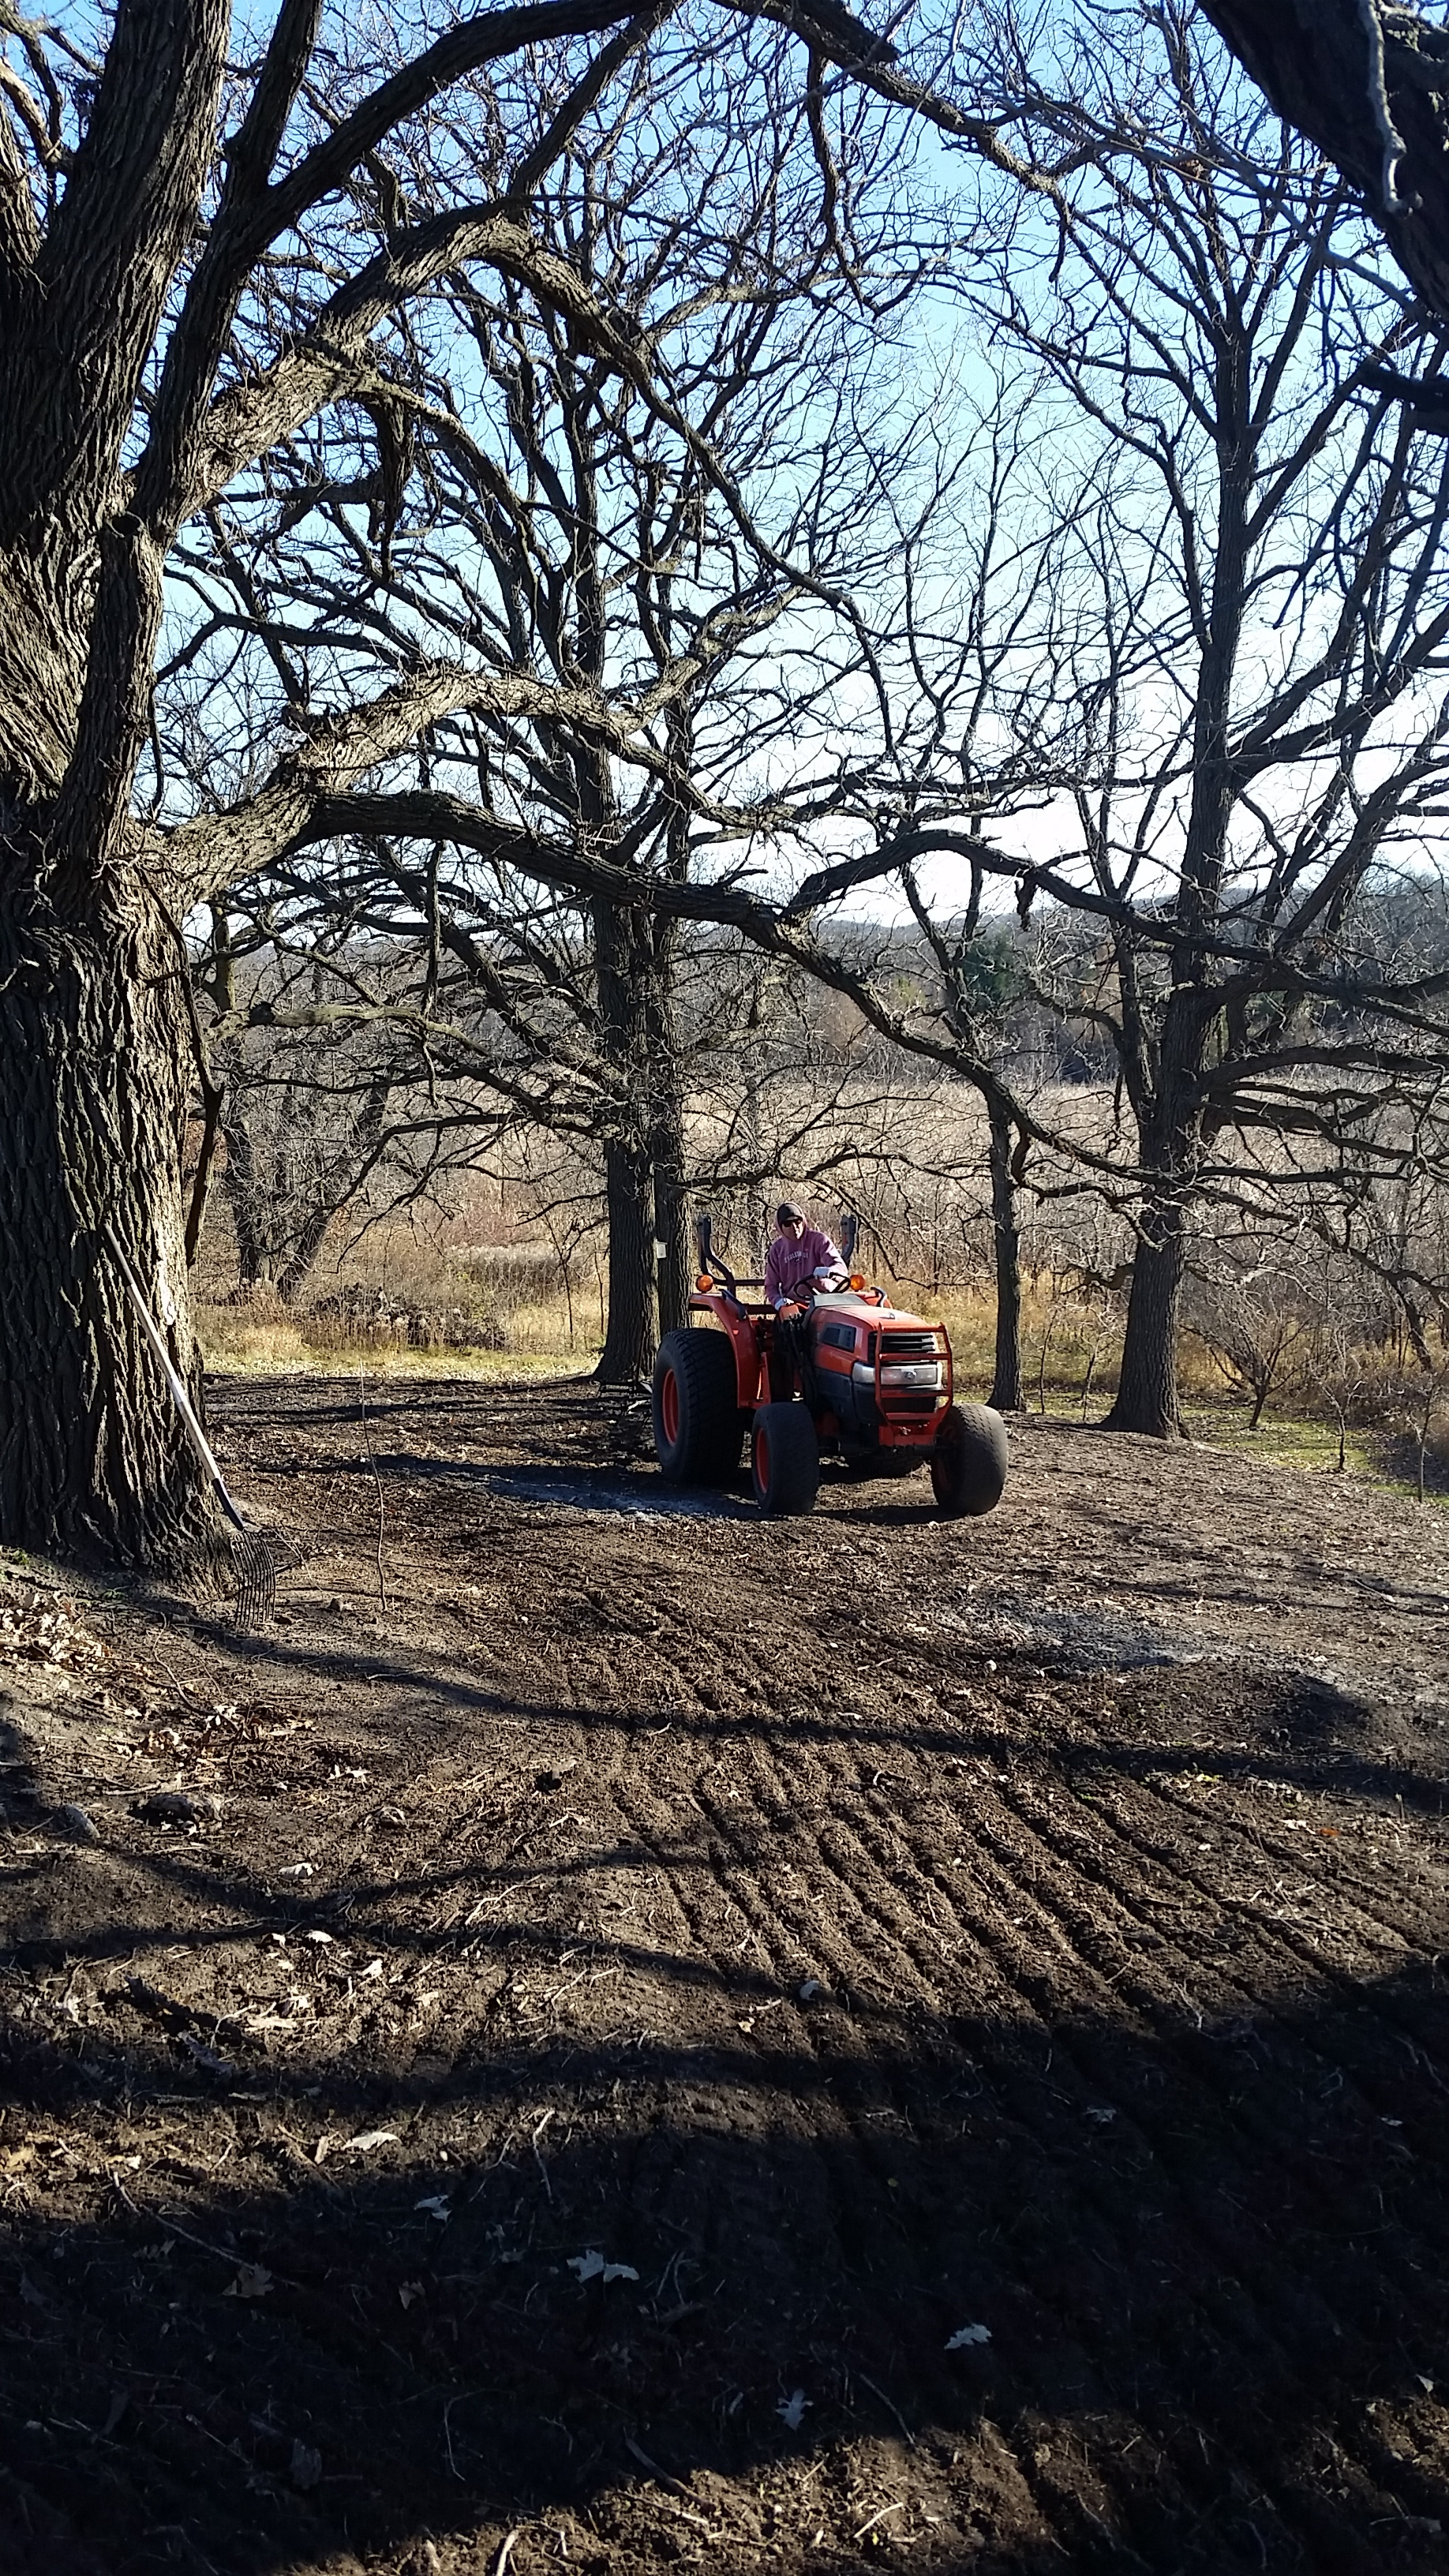 Preparing the soil for seeding in an Oak Savanna such as this takes time. We sprayed this plot the year before, burned it the following spring, sprayed two more times during the course of the summer, and burned the debris in the fall before seeding it.